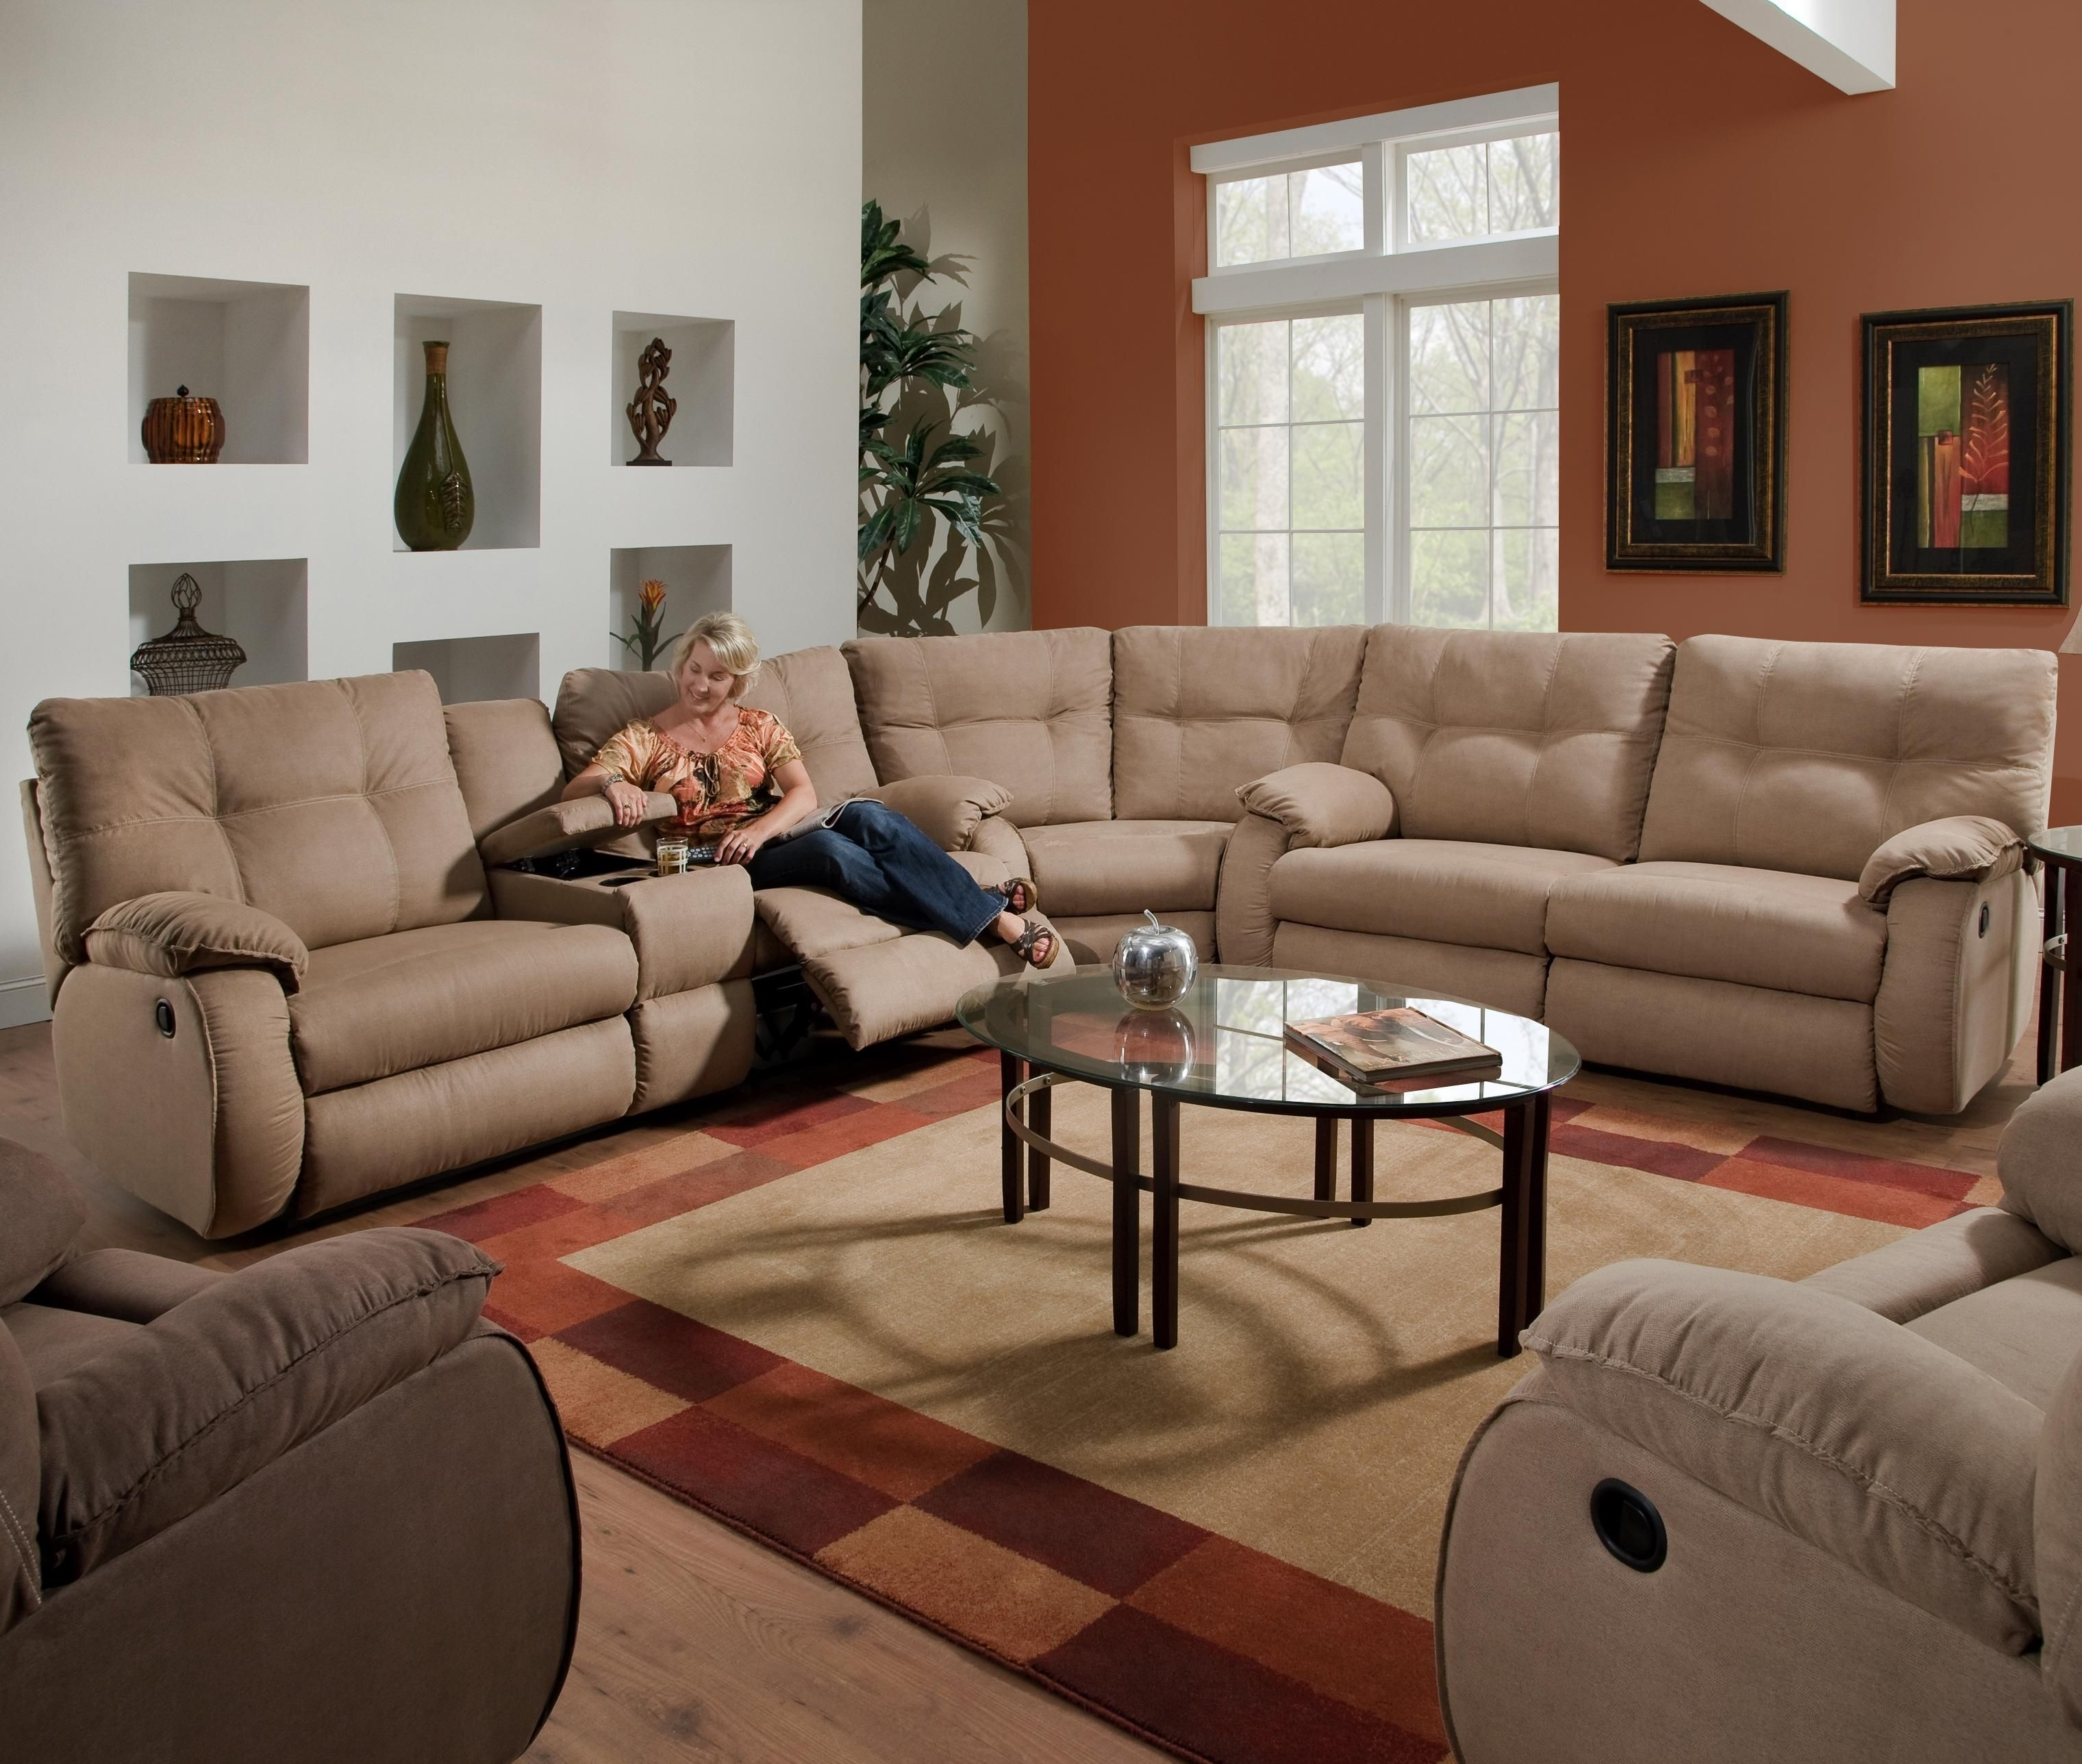 2018 Dodger Reclining Sectional Sofasouthern Motion (View 9 of 20)